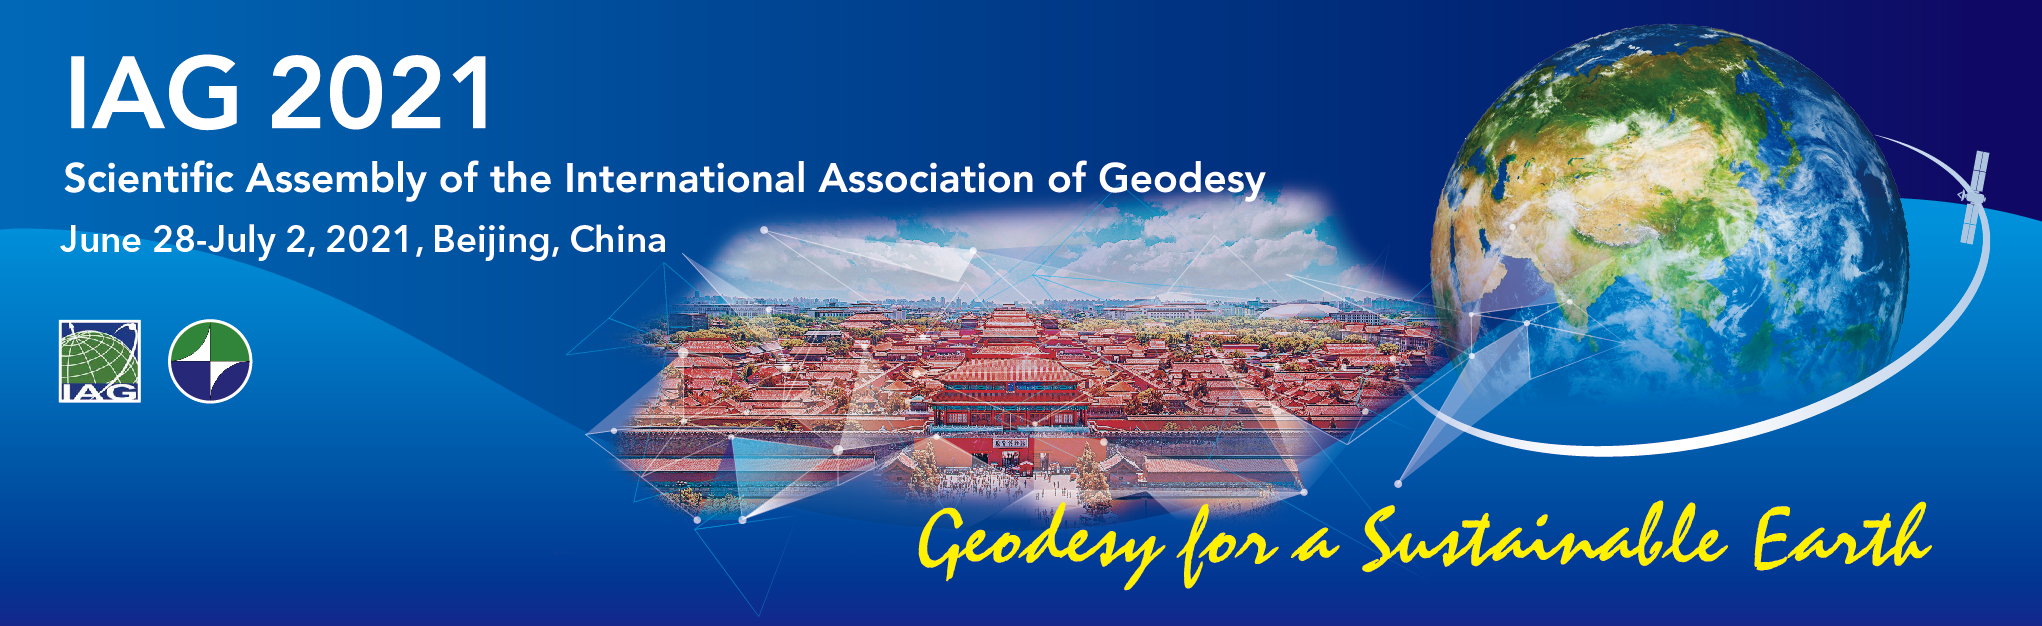 IAG 2021—Scientific Assembly of the International Association of Geodesy